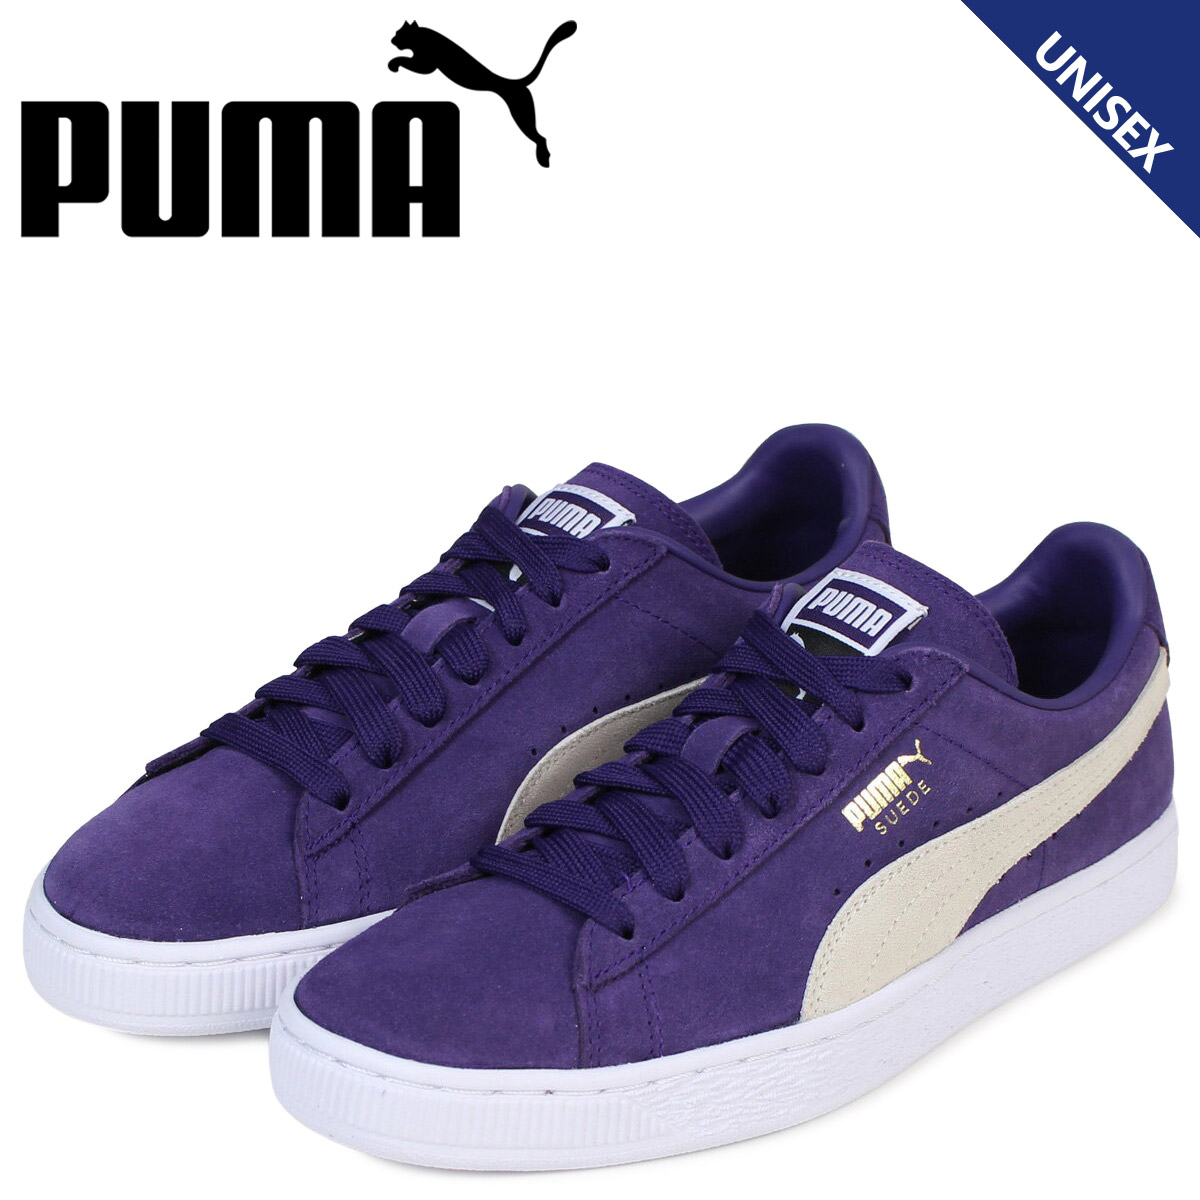 new concept 629f2 e2e11 PUMA Puma suede classical music sneakers SUEDE CLASSIC + 363,242-32 men's  lady's shoes purple